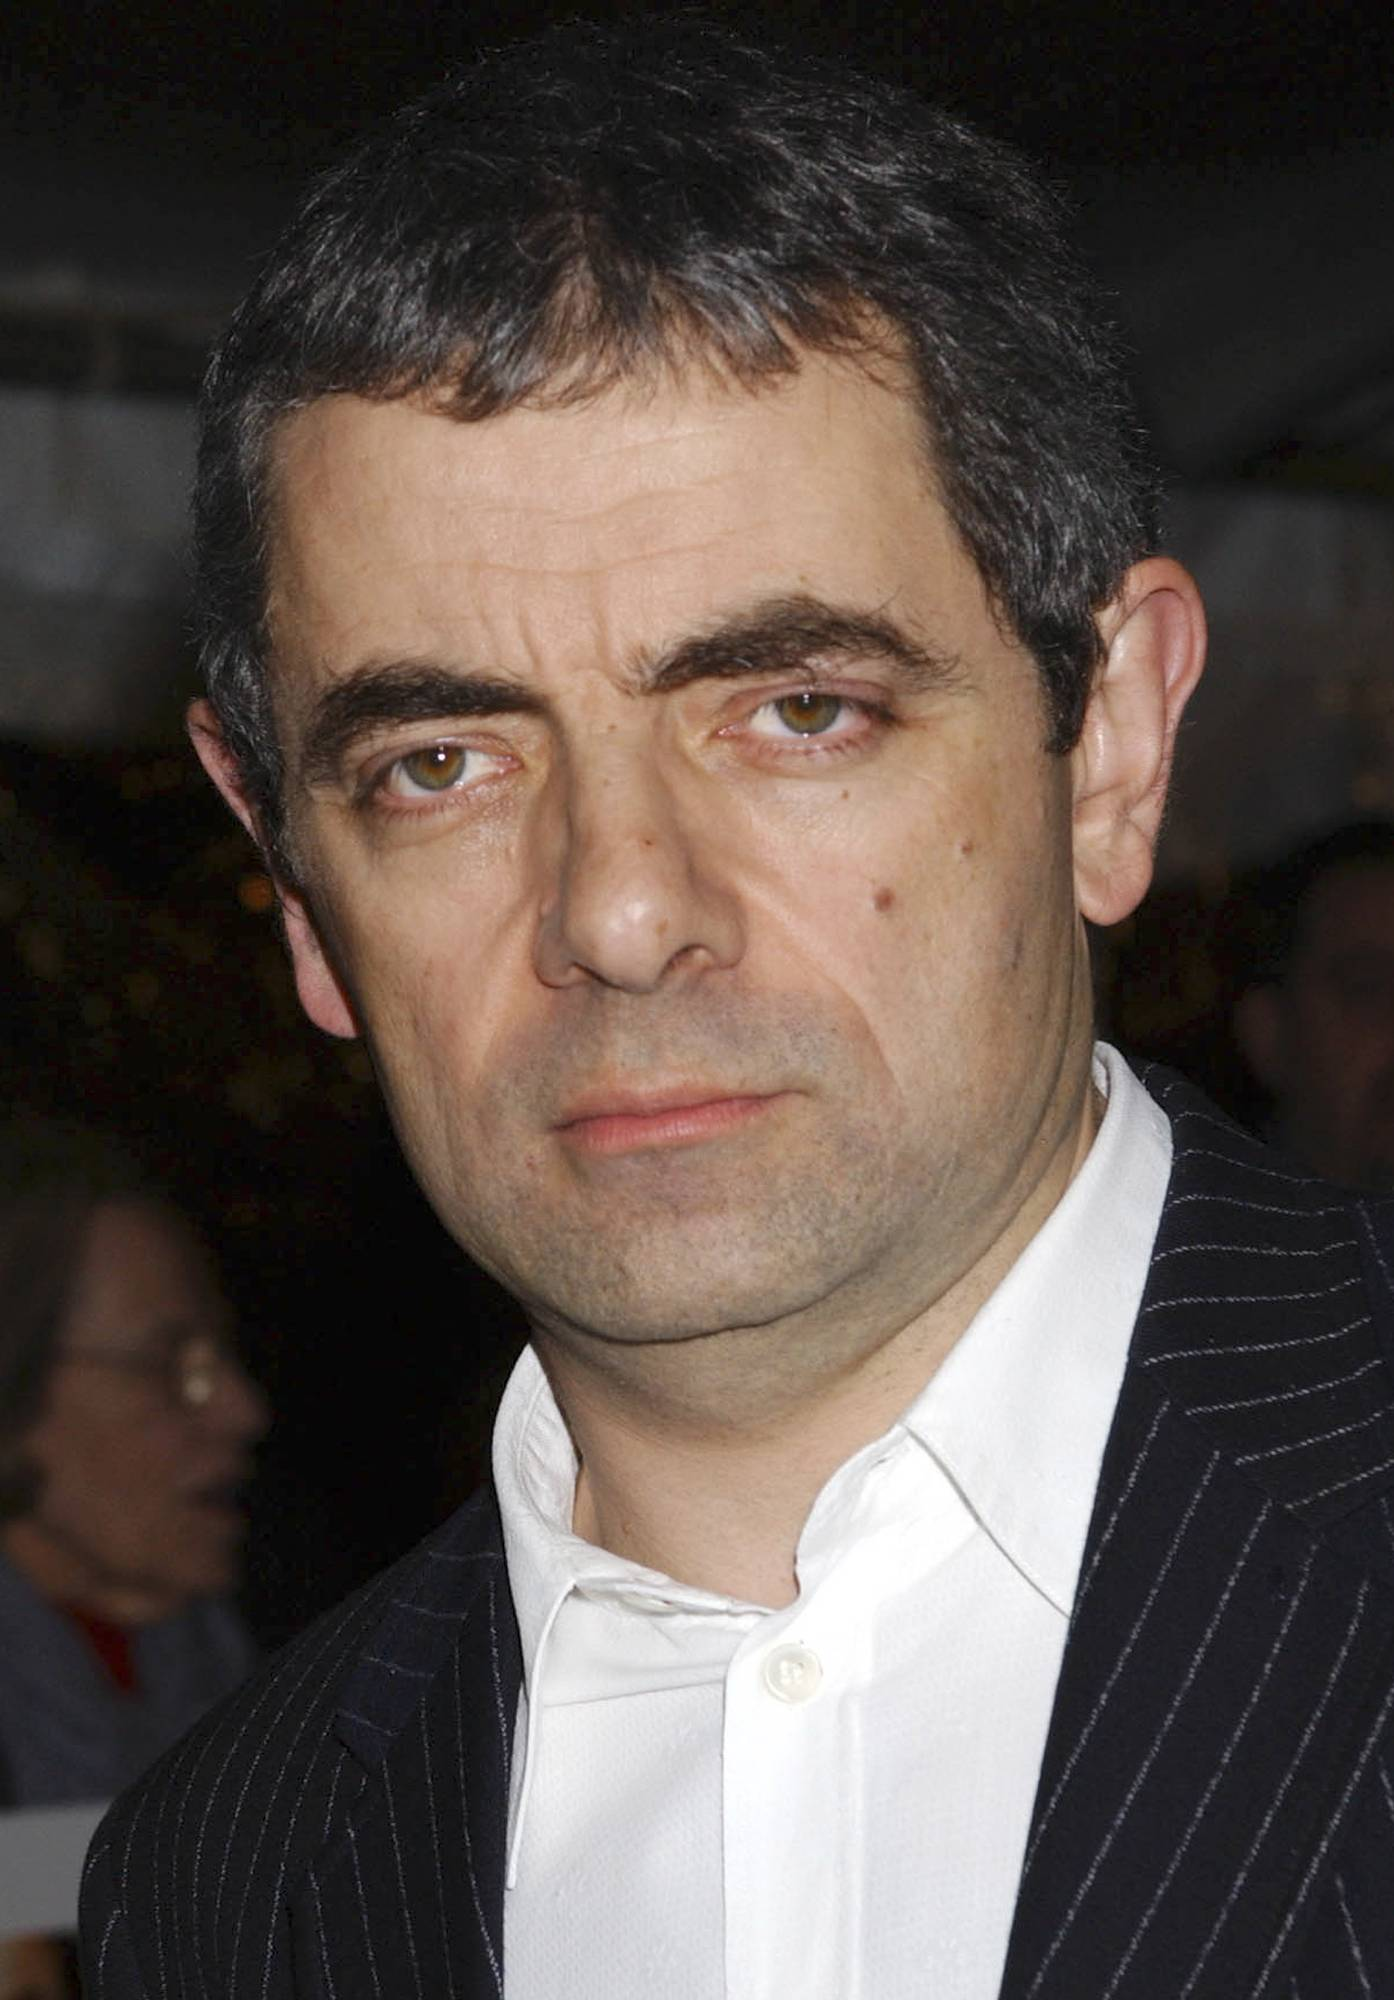 Actor Rowan Atkinson was released from a U.K. hospital Friday after suffering minor injuries in a car accident late Thursday.